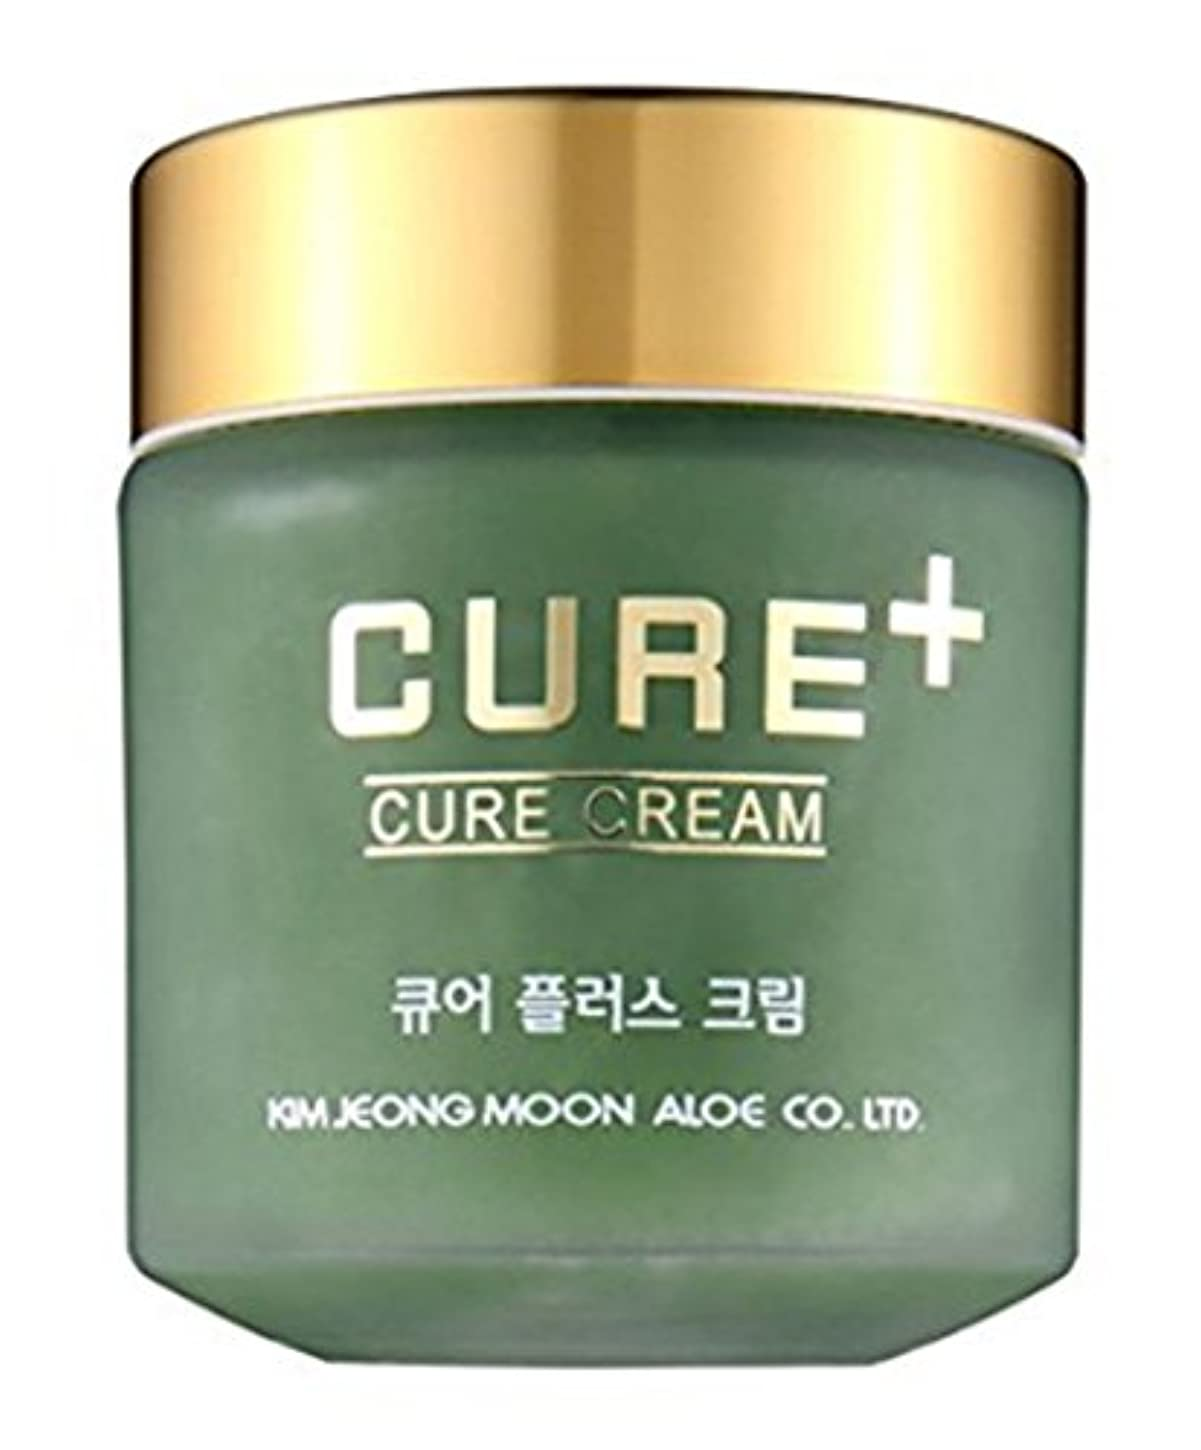 アウトドア距離男[ギムジョンムン] Kim Jung Moon アロエとセンス炉キュアプラスクリーム Moisturizing and Protection Effect of Aloe CURE CREAM 80g 海外直送品 ( Kim Jung Moon Aloe Lecense Loewe Cure Plus Cream Moisturizing and Protection Effect of Aloe CURE CREAM 2.8oz(80g)) [並行輸入品]